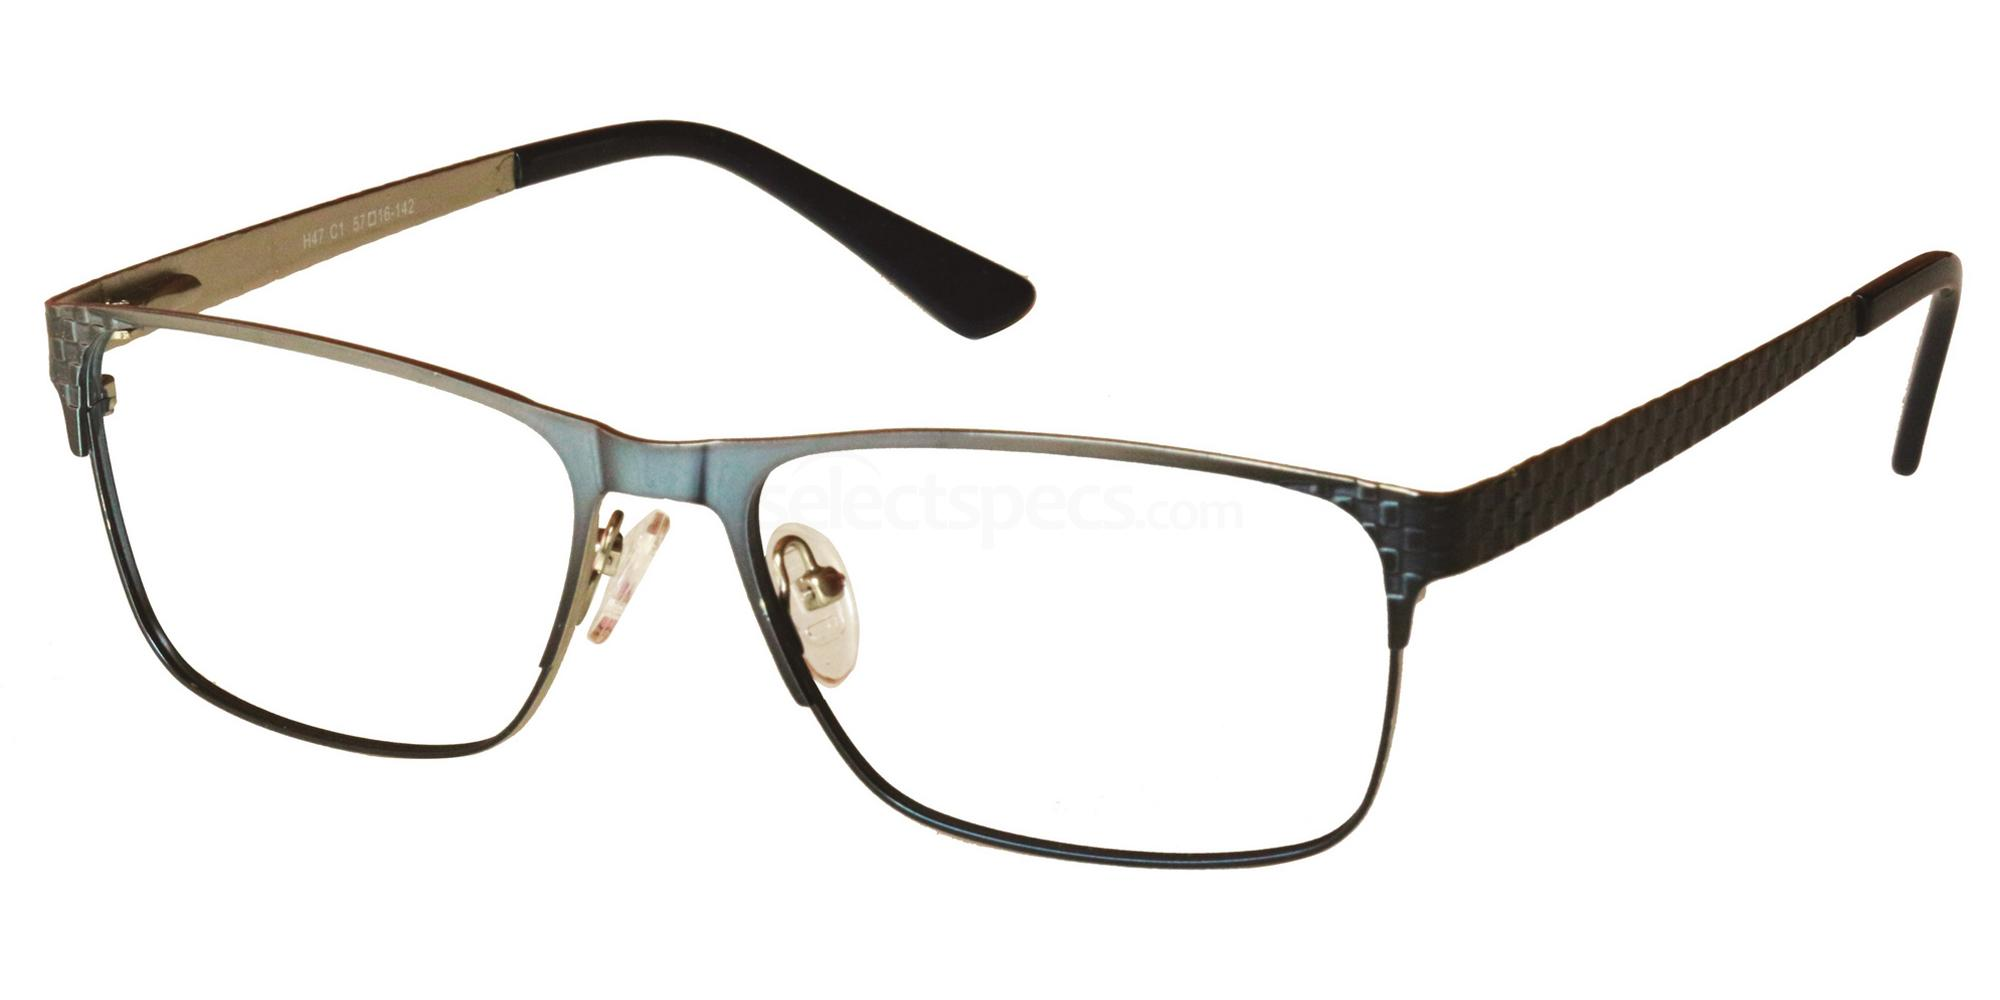 C1 H47 Glasses, Halstrom